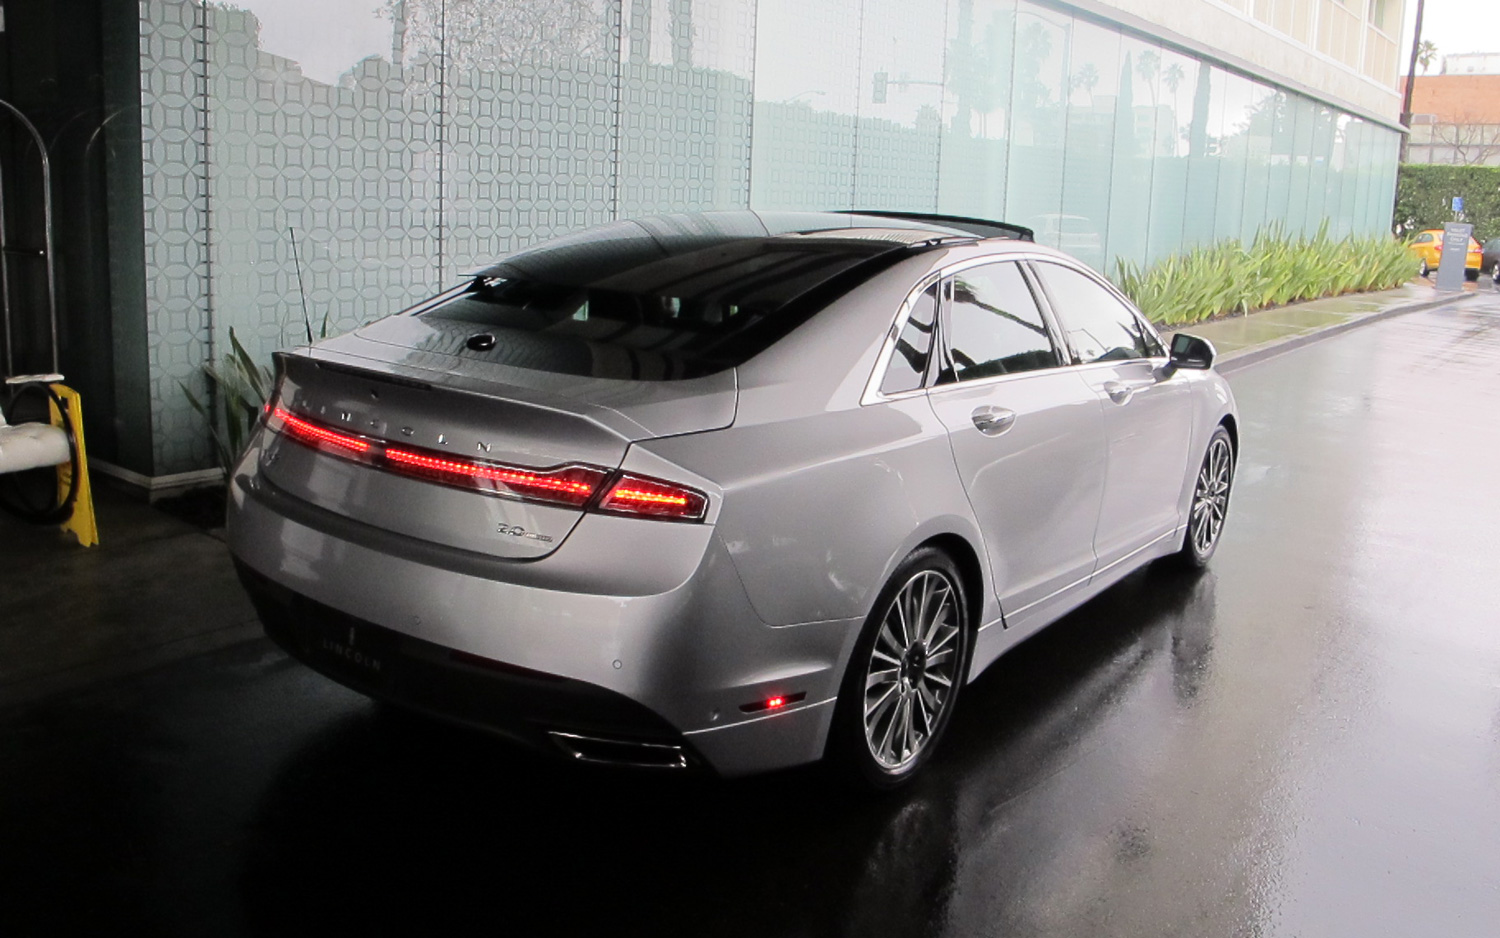 2013 Lincoln Mkz #14